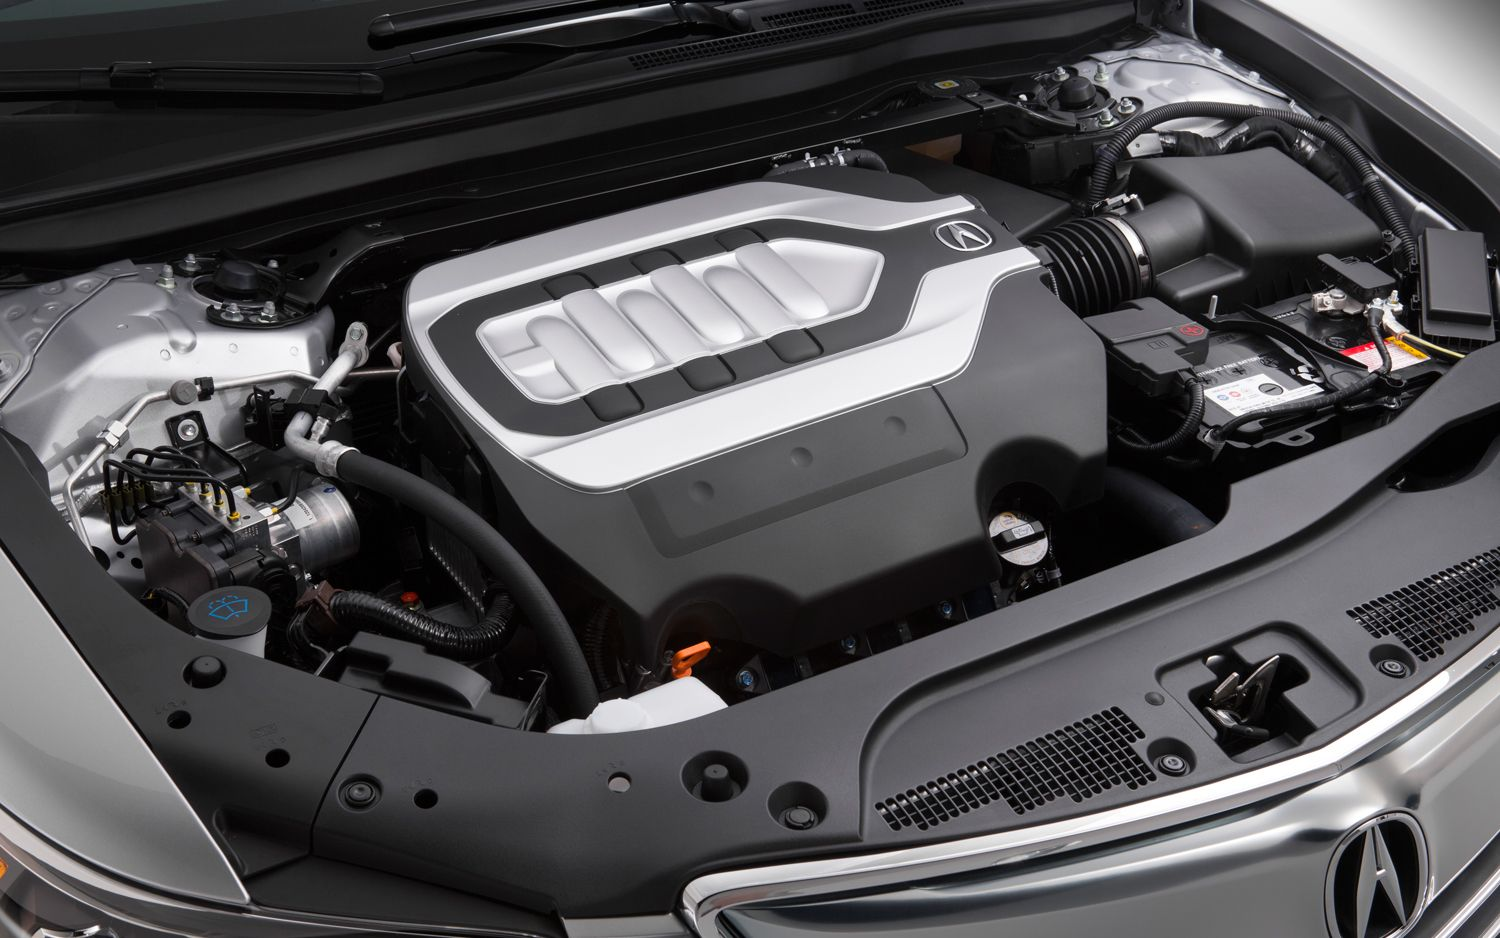 2014 Acura RLX Engine Performance